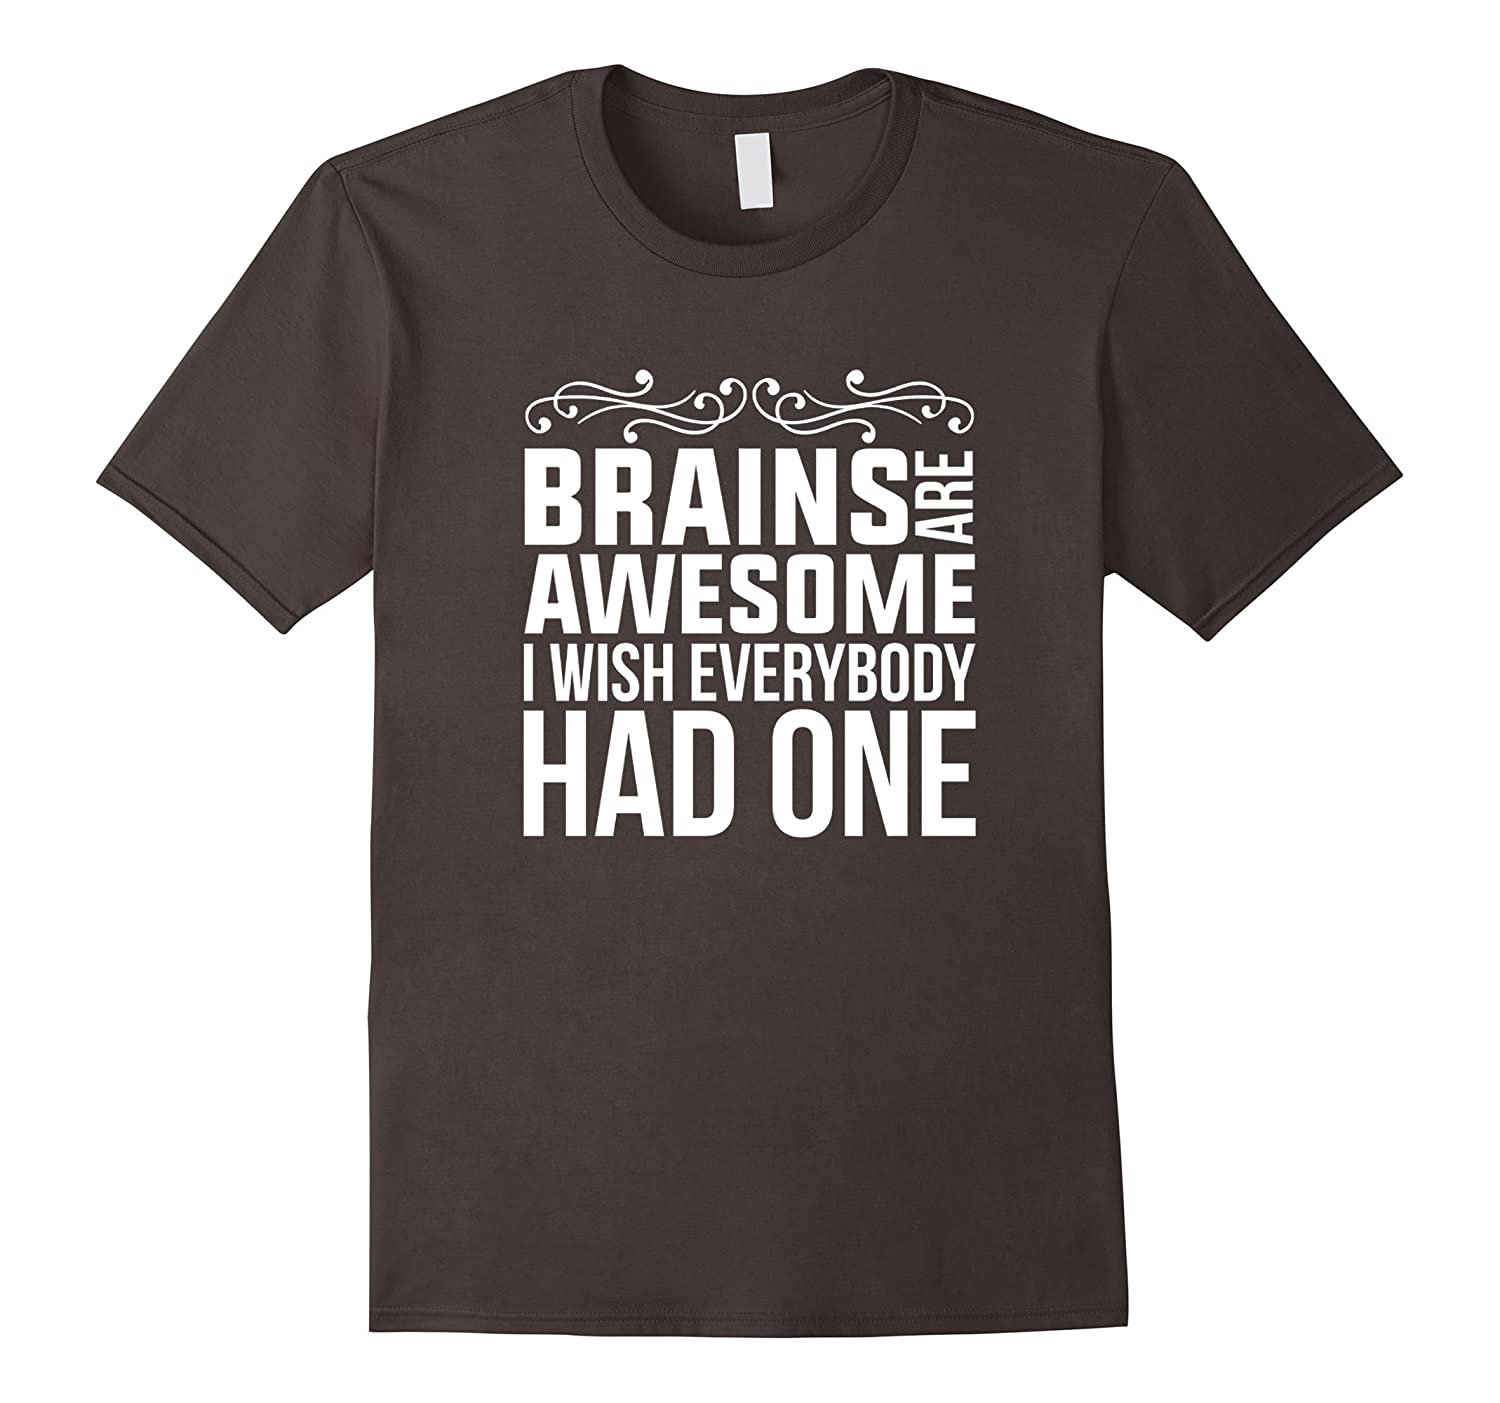 ab76a4cbb Brains Are Awesome I Wish Everybody Had One Funny Shirt Gift-Art ...